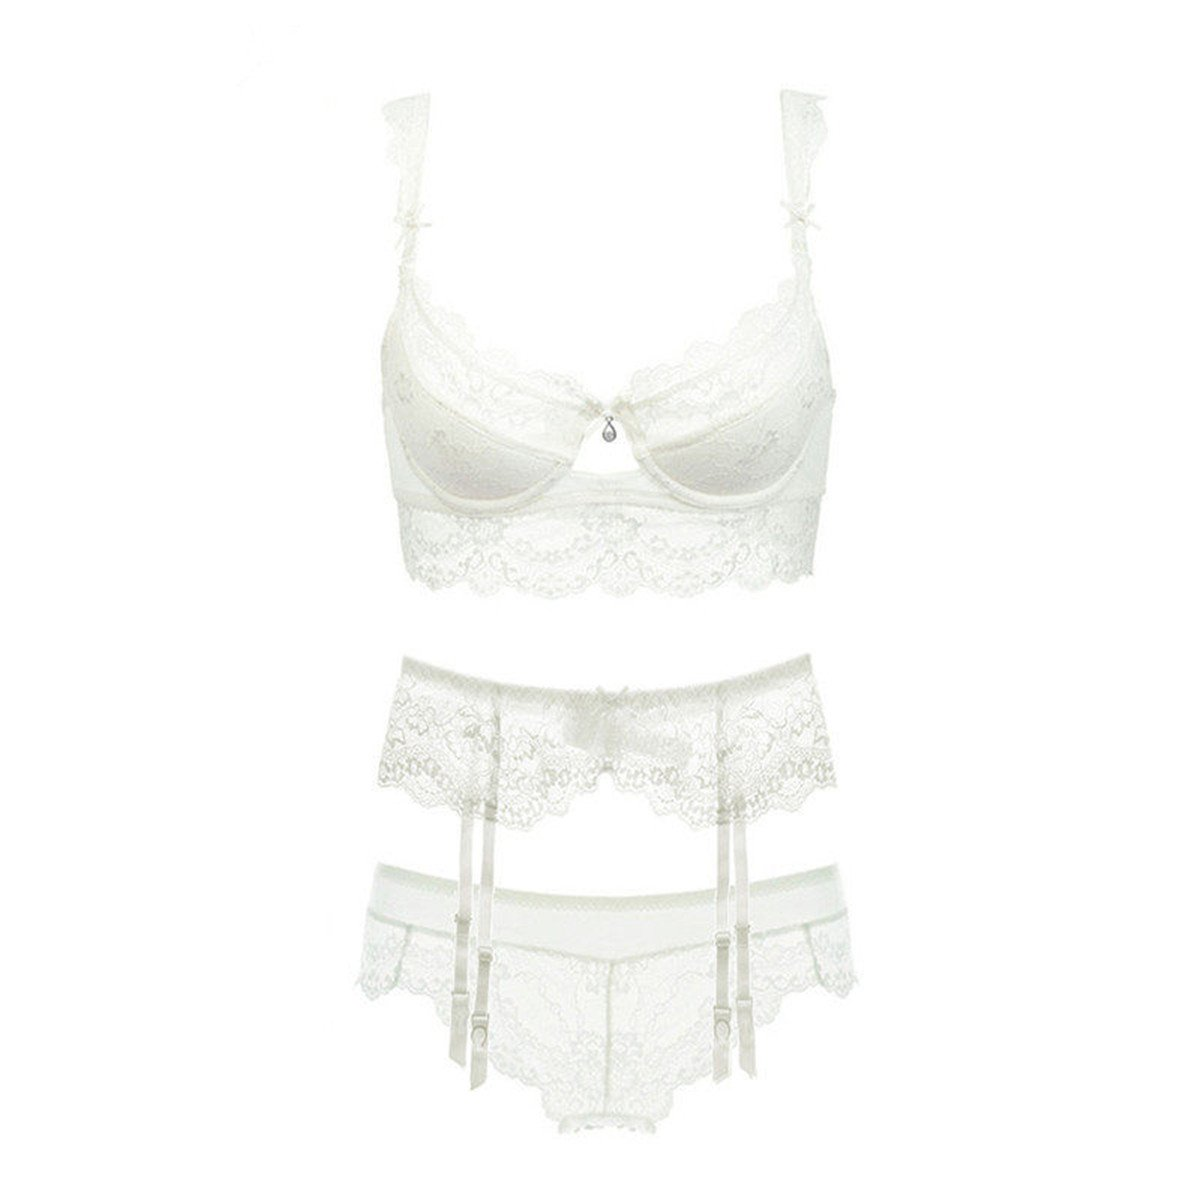 9ec3f8ae04 Top4  Varsbaby Women Push Up Embroidery Bras Set Lace Lingerie Bra and  Panties 3 Piece